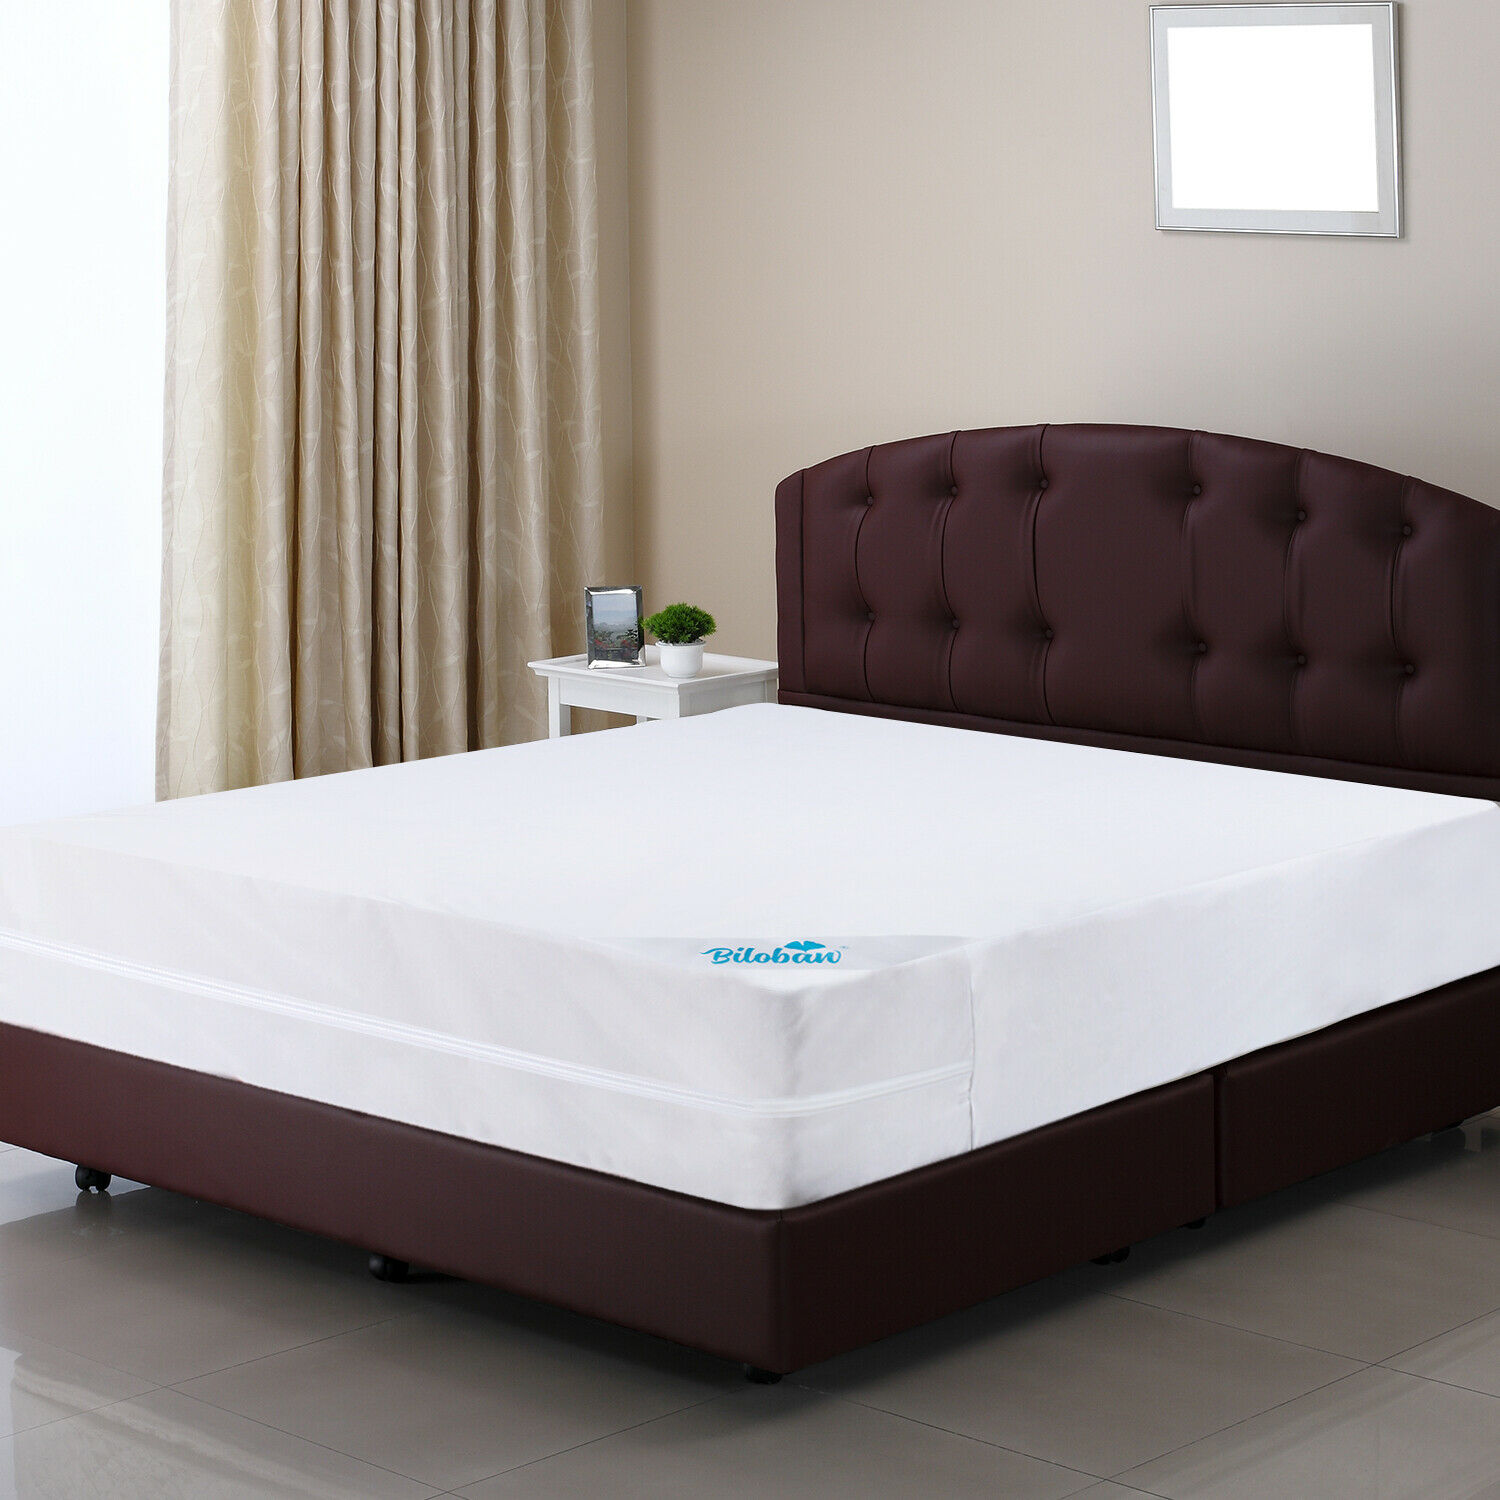 White 100/% Polyester Knit Fabric Encasement Waterproof Machine Washable Bed Bug /& Dust Mite Proof CO-Z Mattress Protector with Zipper Closure 6-Sided Cover Twin Size